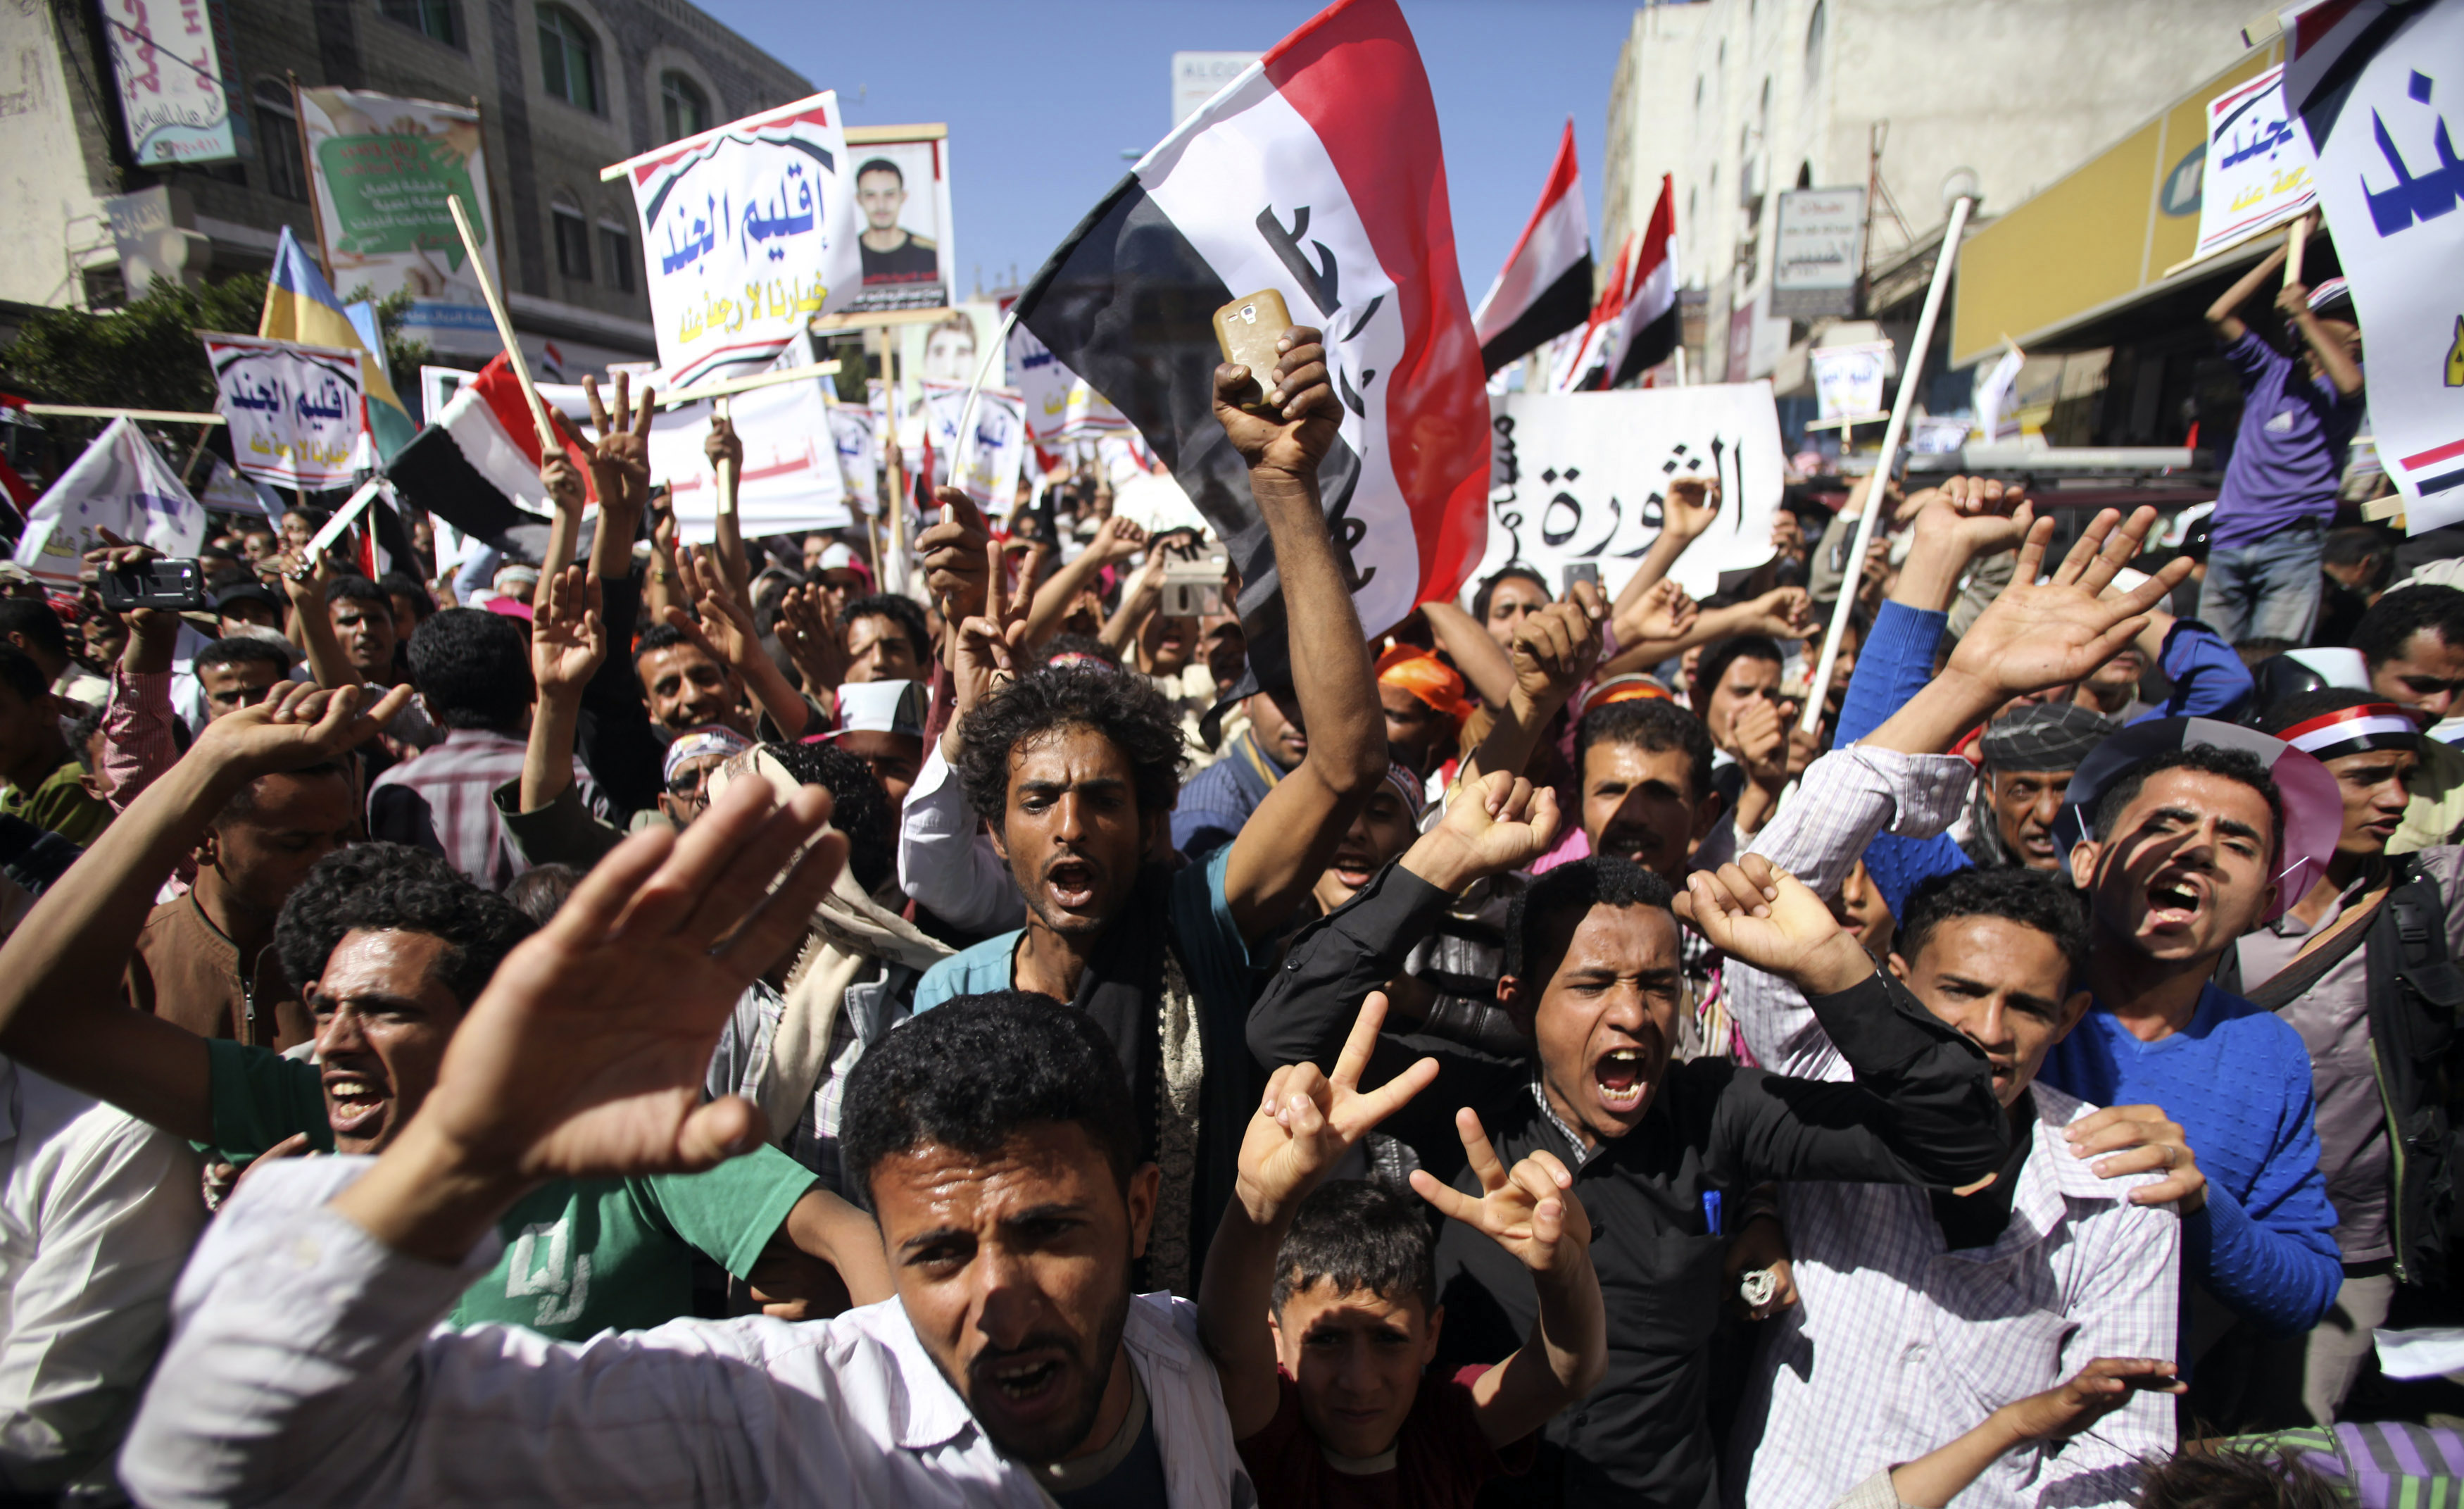 Anti-Houthi protesters in Yemen